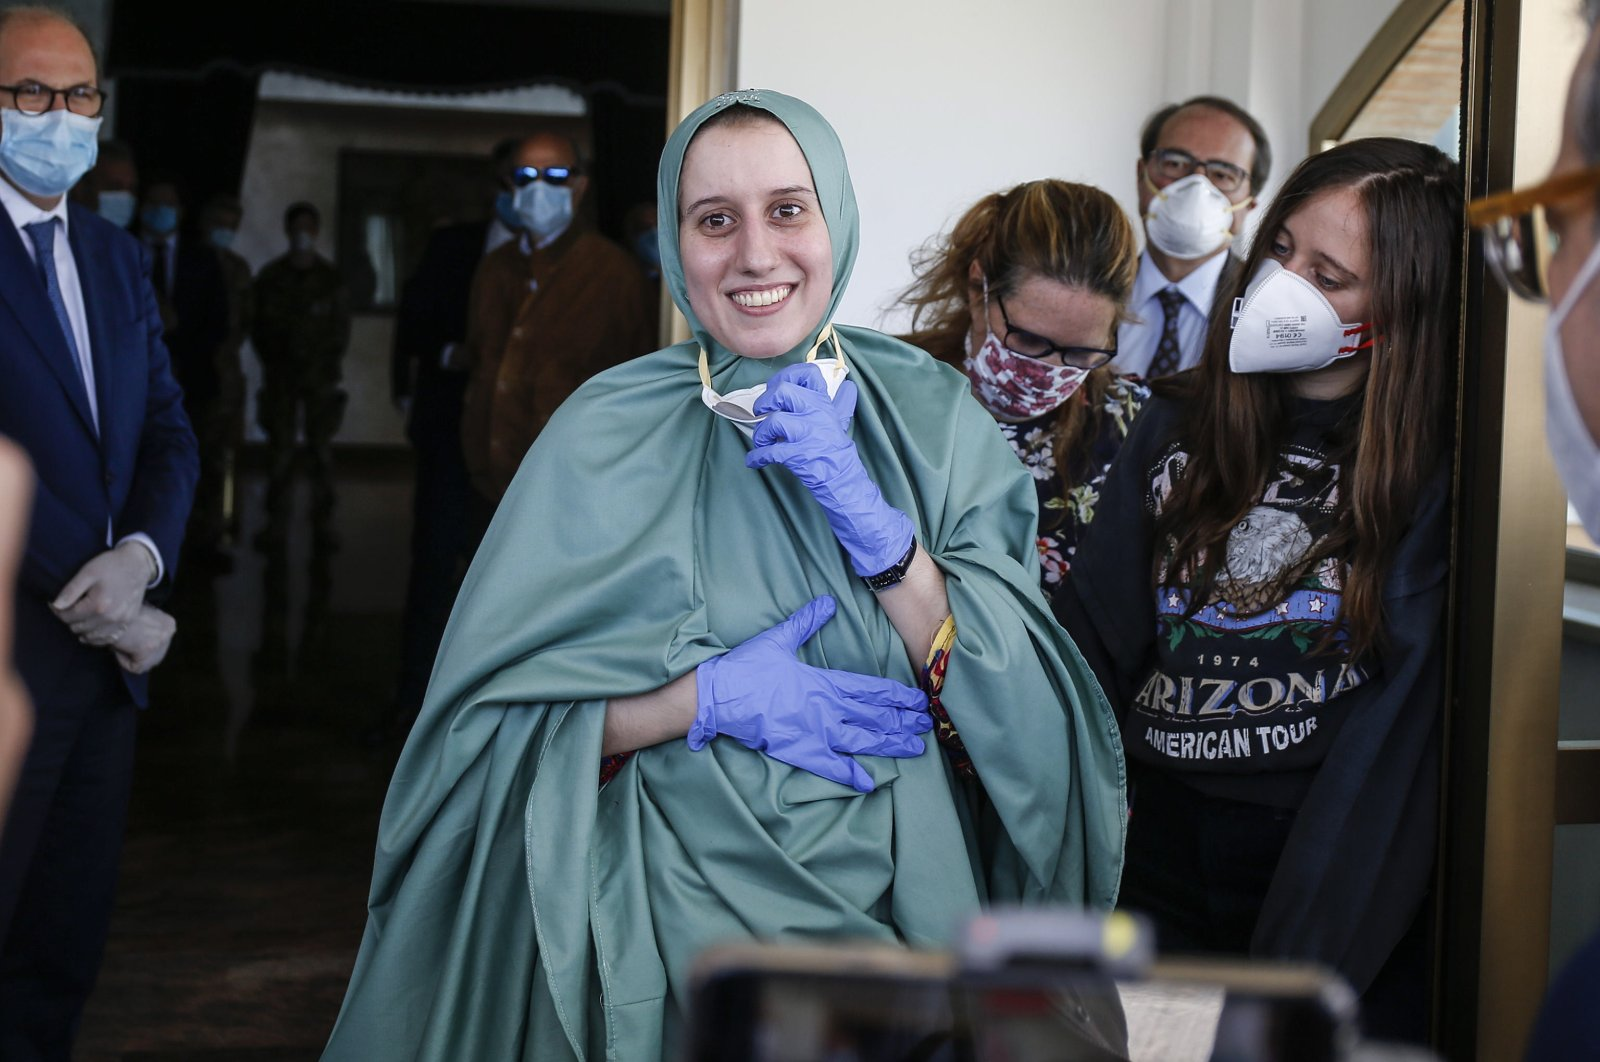 Silvia Romano, wearing a green tunic, reacts upon her arrival at the Ciampino airport, Rome, Italy, May 10, 2020. (EPA Photo)